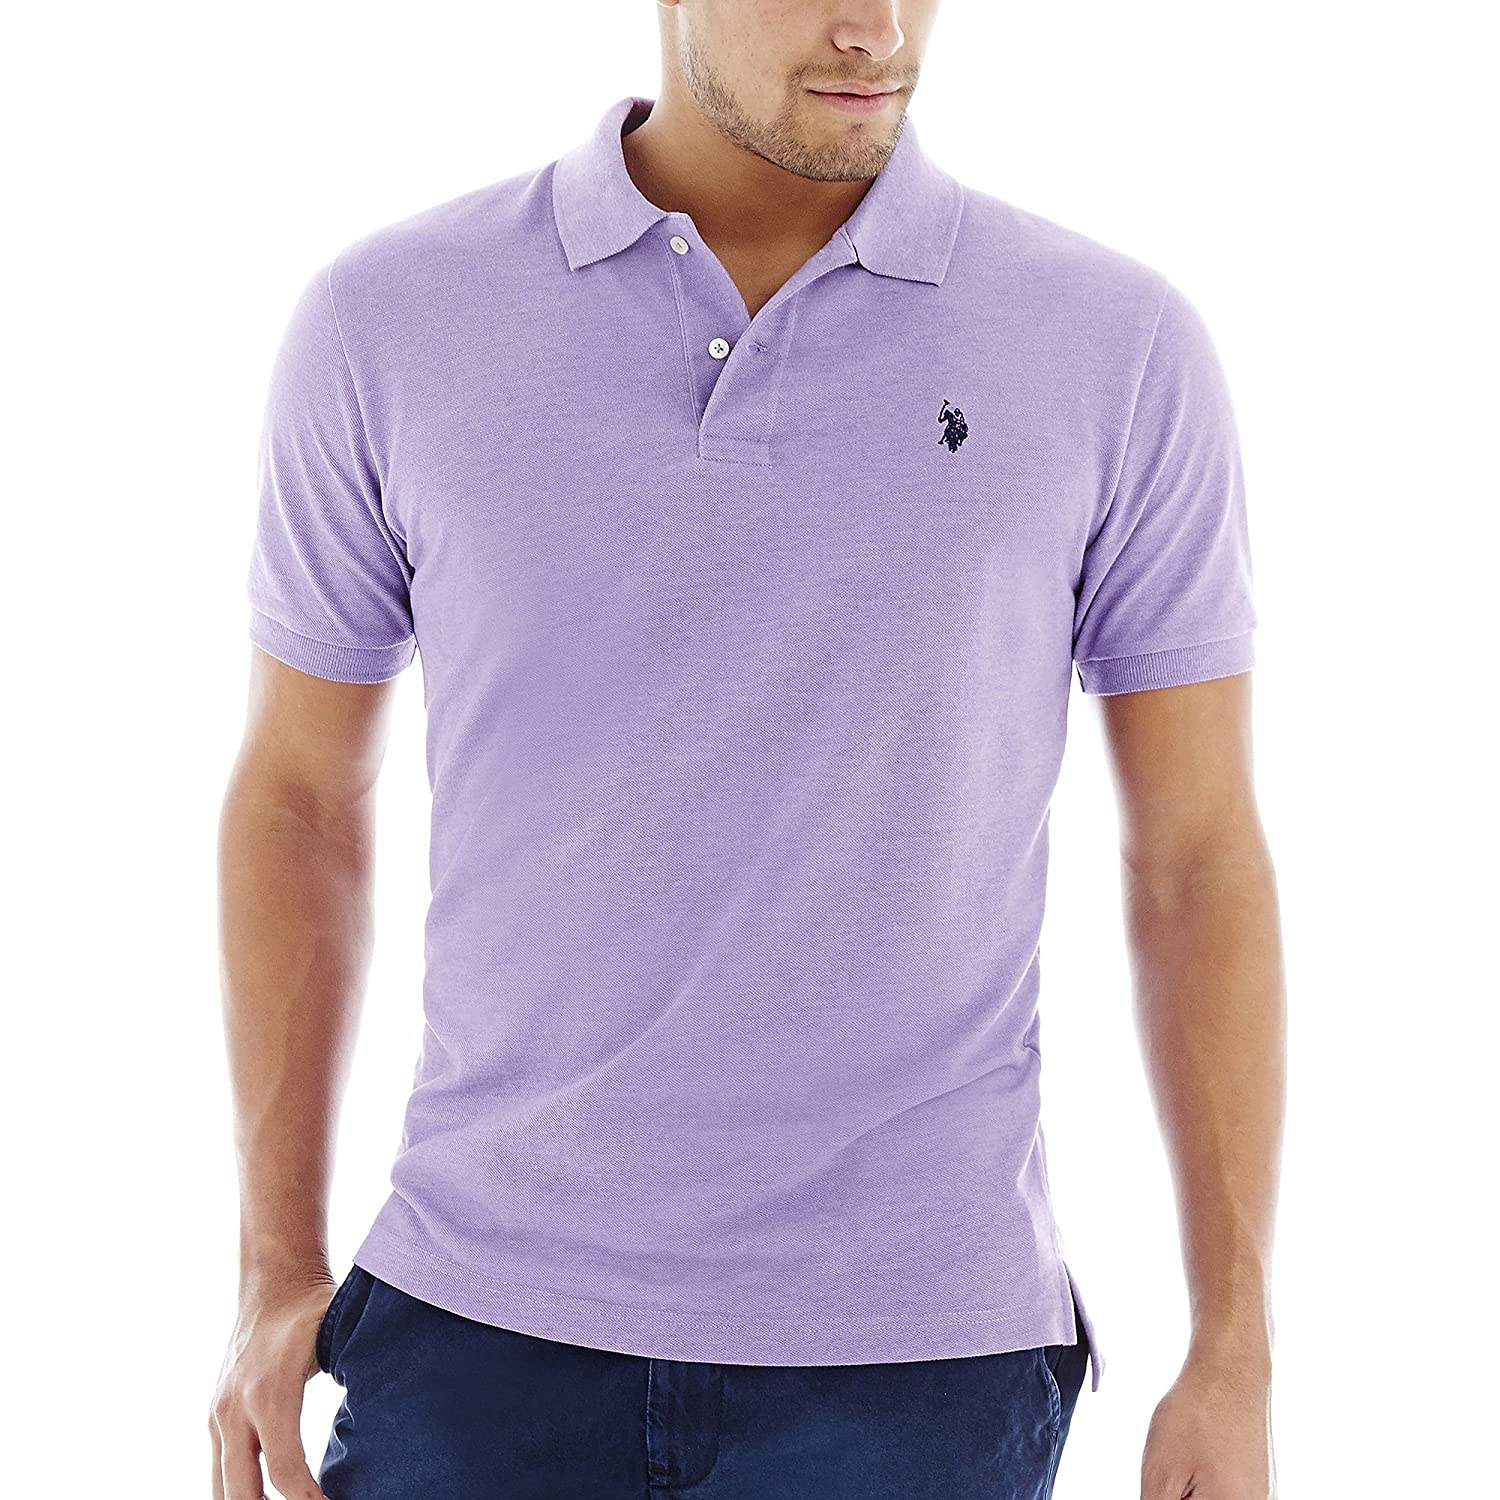 U.S. Polo Assn. Men's Solid Polo Shirt with Small Pony at Amazon Men�s Clothing store